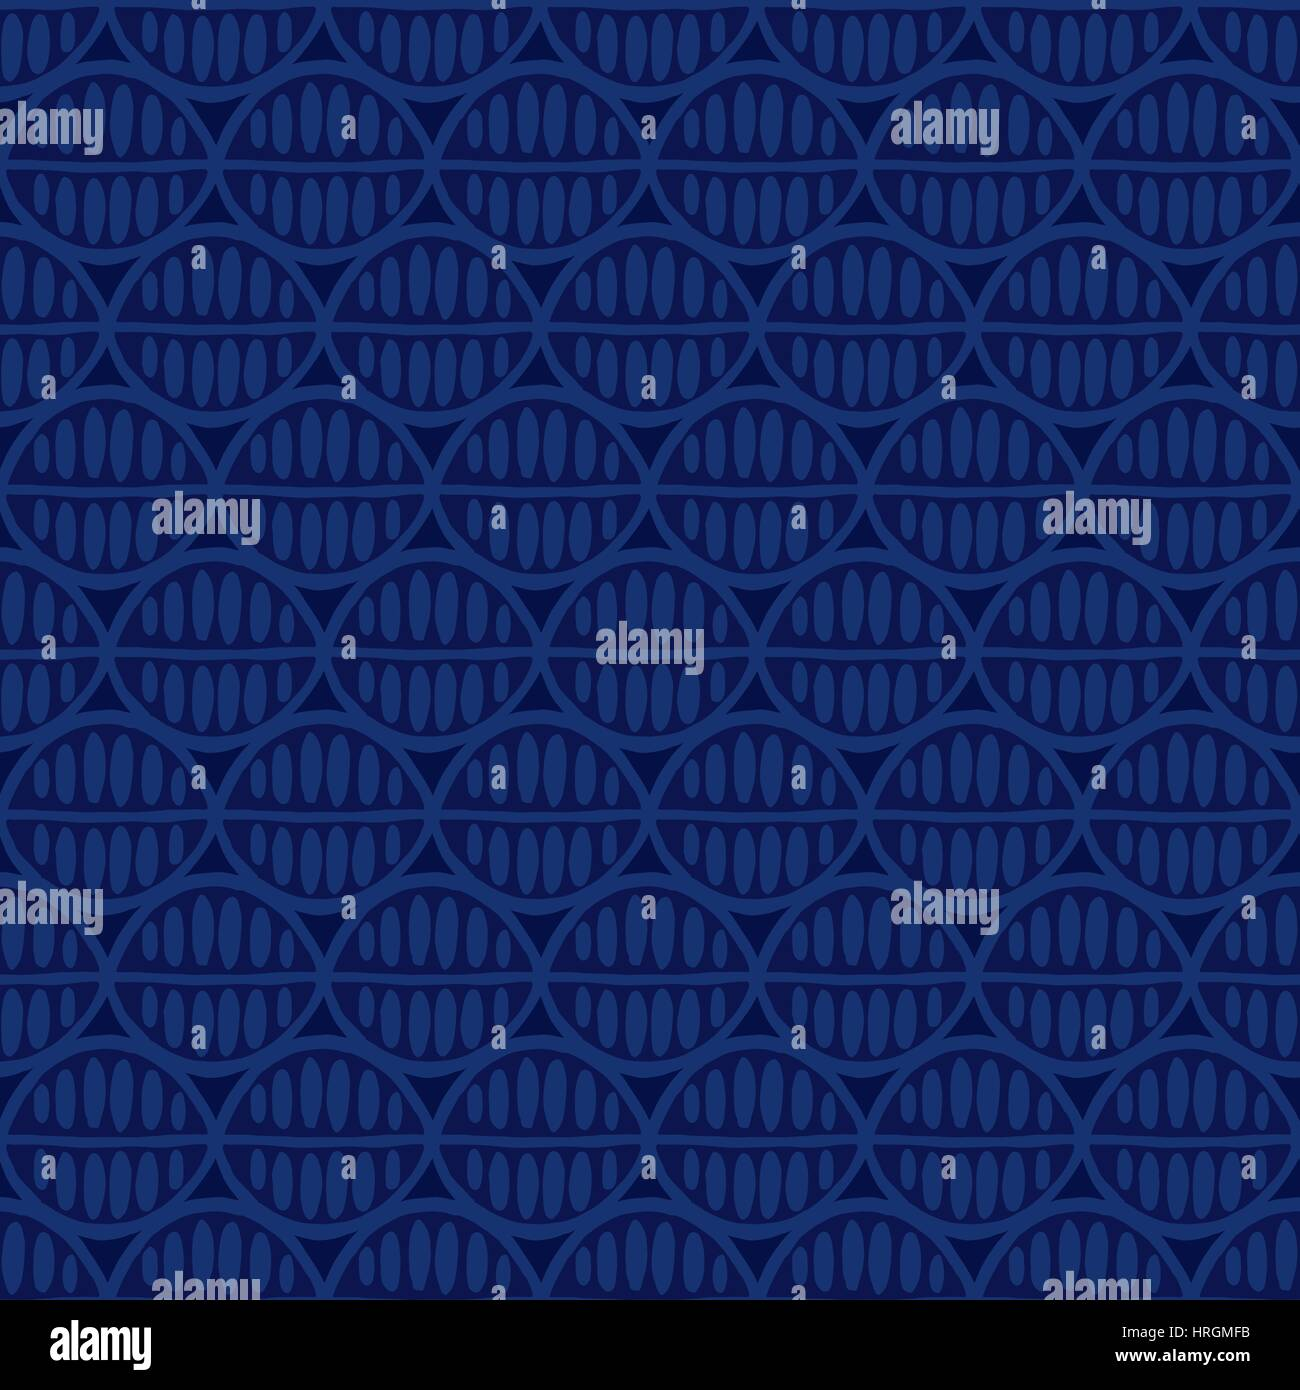 Seamless floral pattern with primitive leaves. Tribal ethnic background, simplistic geometry, indigo tones. Textile - Stock Image